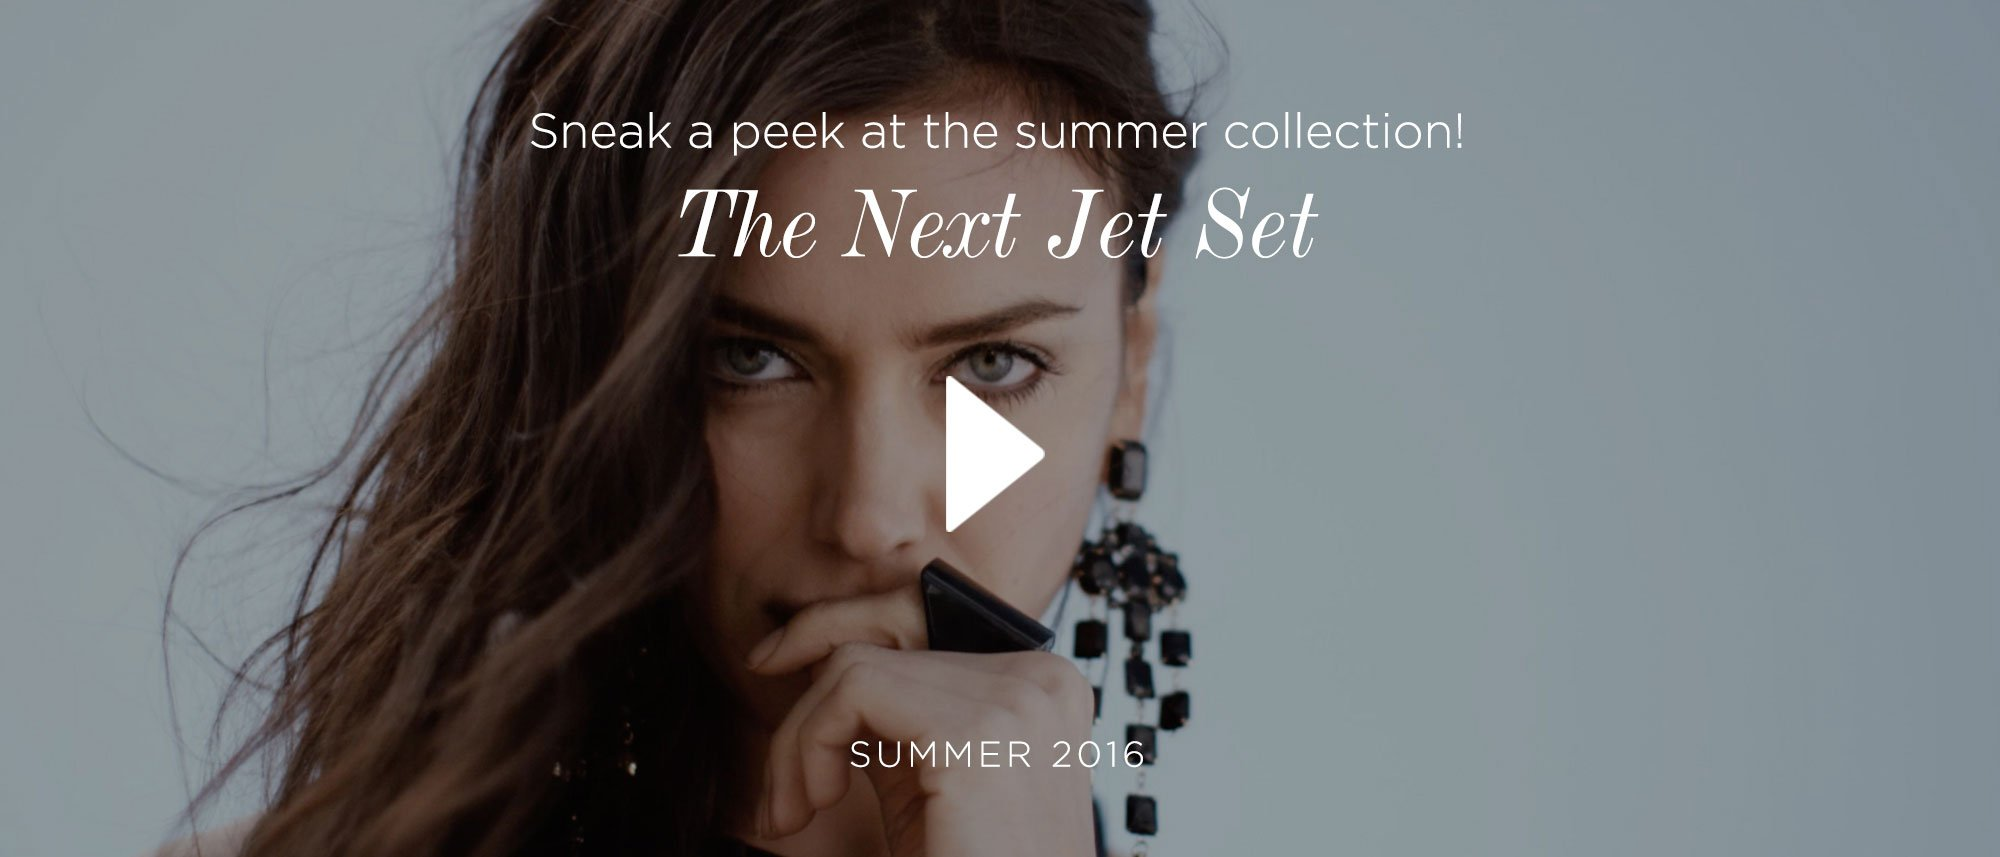 Sneak a peek at the summer collection! The Next Jet Set Summer 2016.